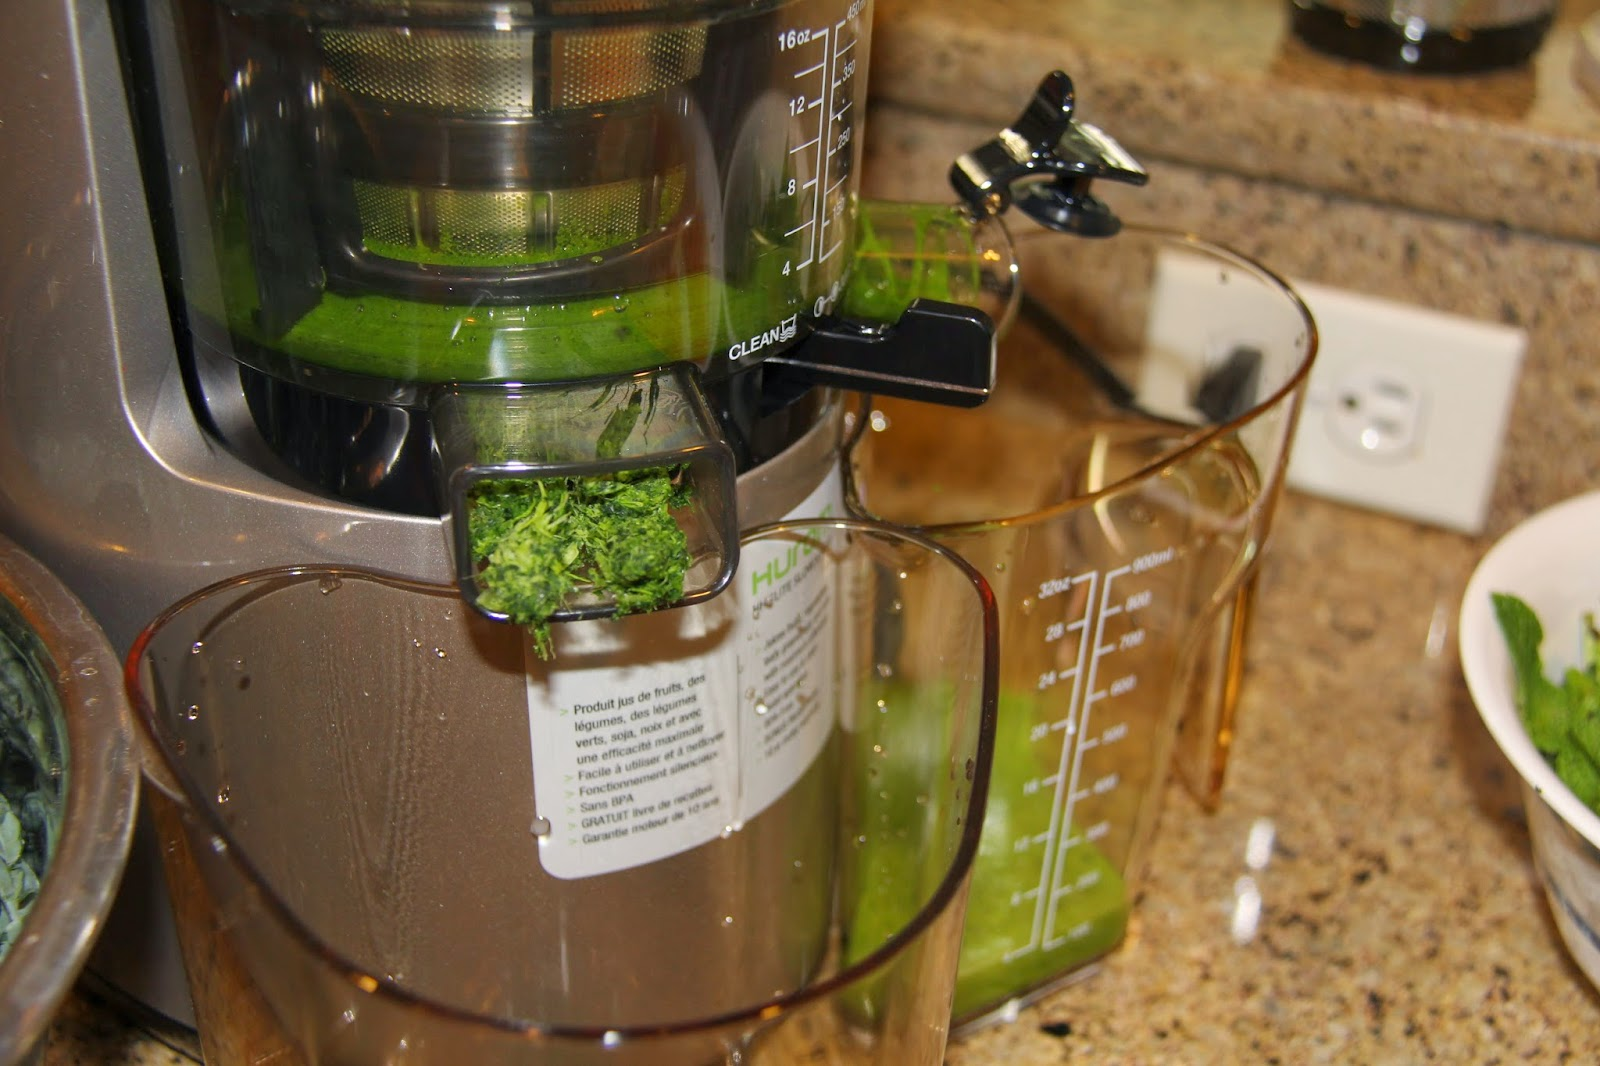 Hurom Slow Juicer Too Much Pulp : The pulp came out nearly dry! I give this juicer 5 stars!